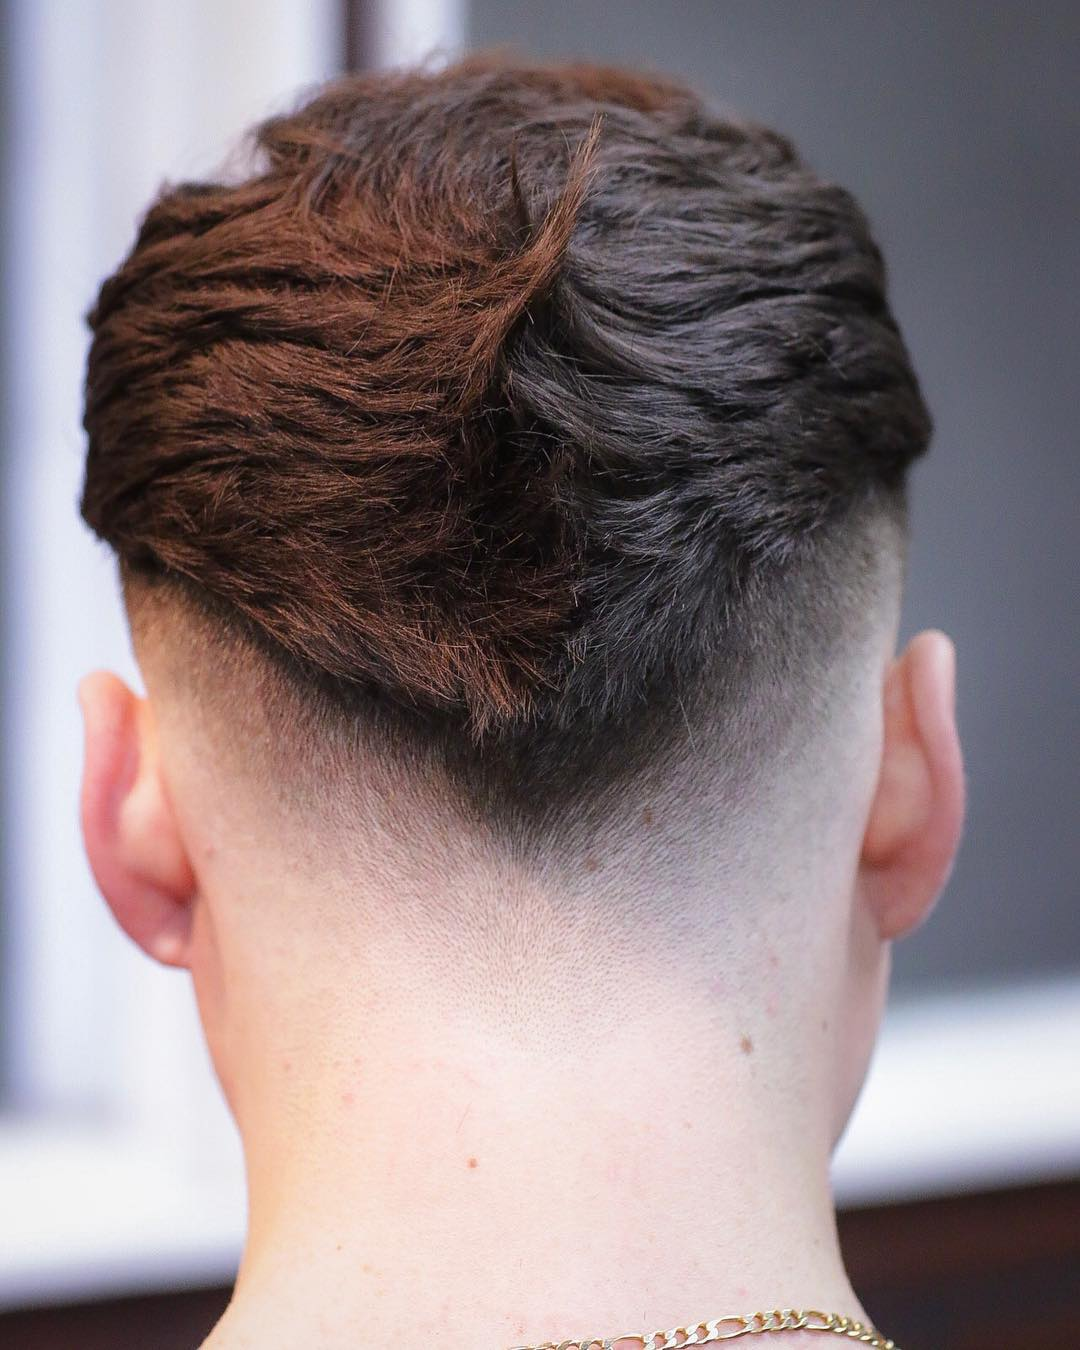 10+ Hot V-Shaped Neckline Haircuts for an Unconventional Man